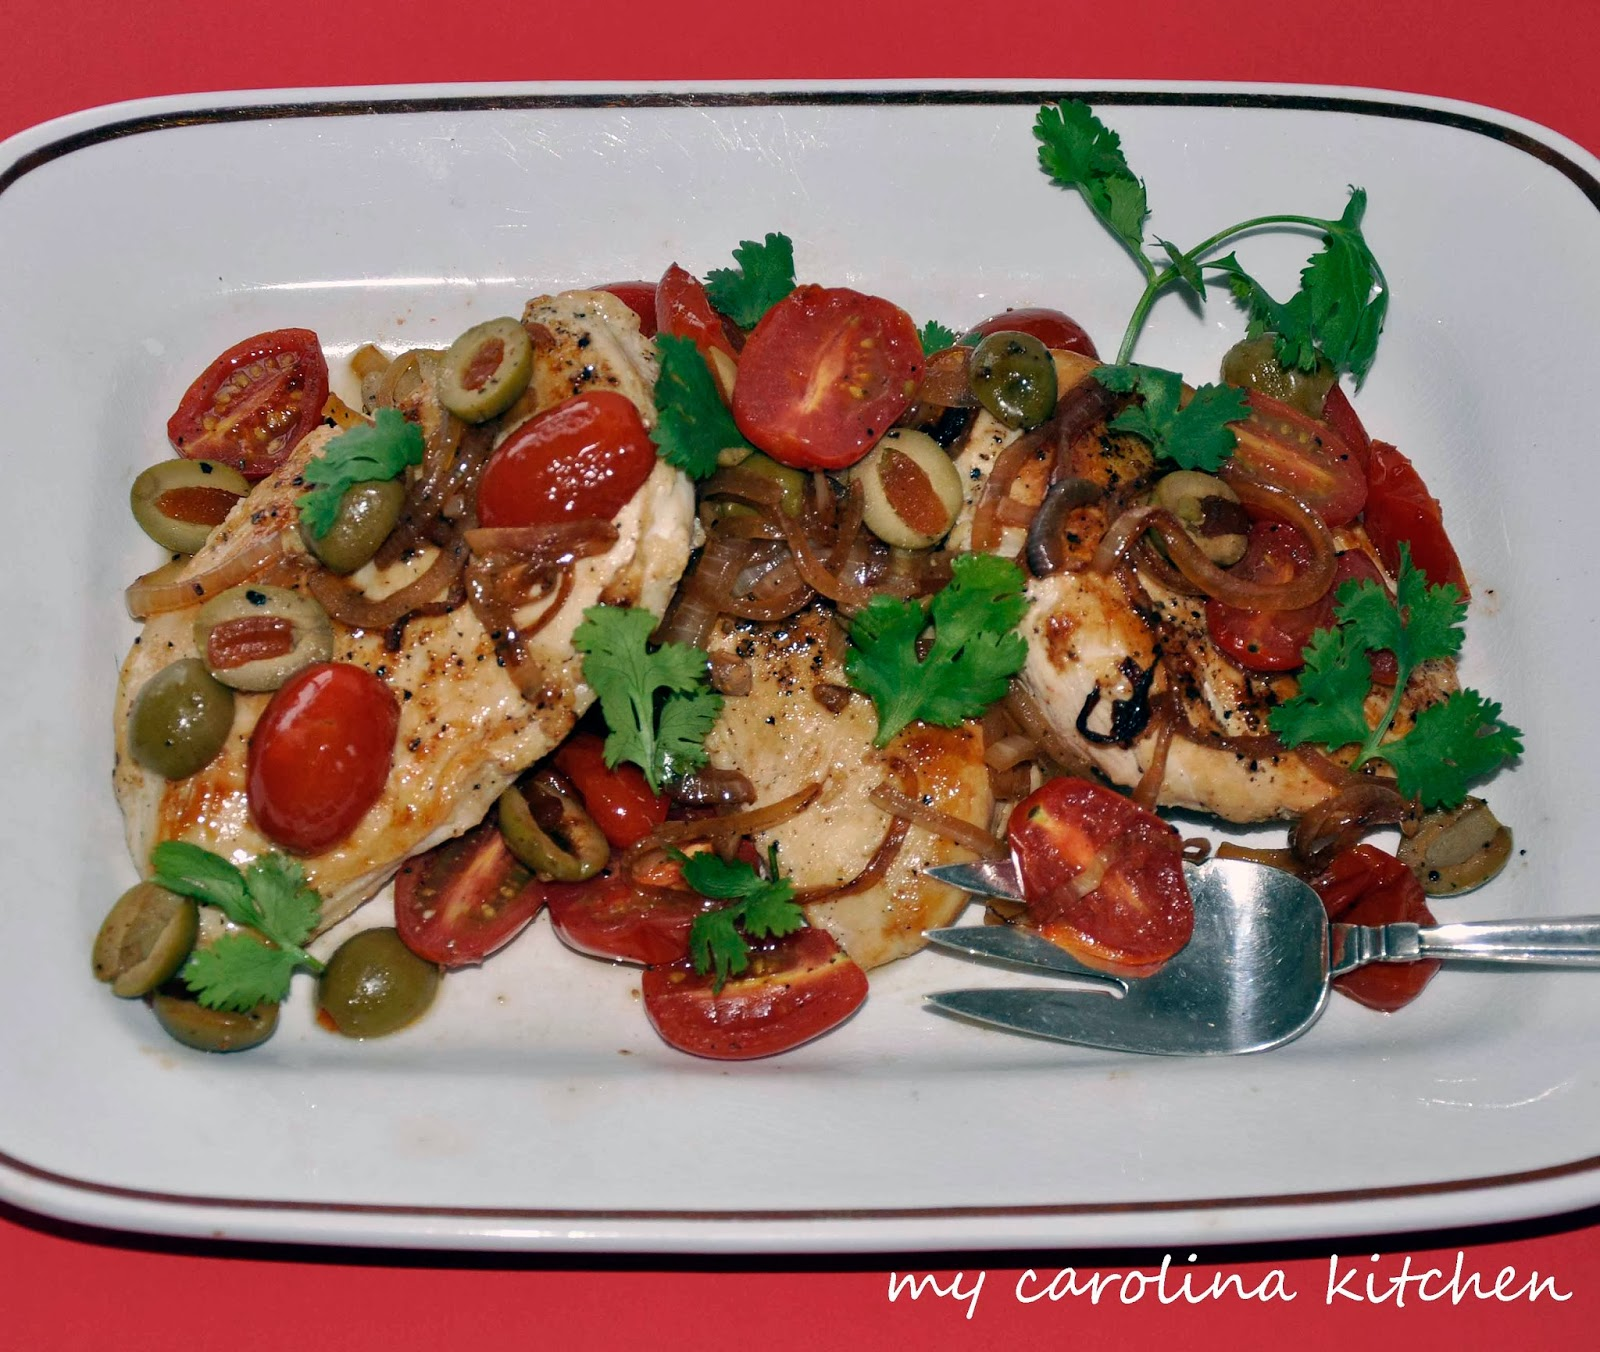 My Carolina Kitchen: Chicken with Tomatoes, Green Olives, & Cilantro